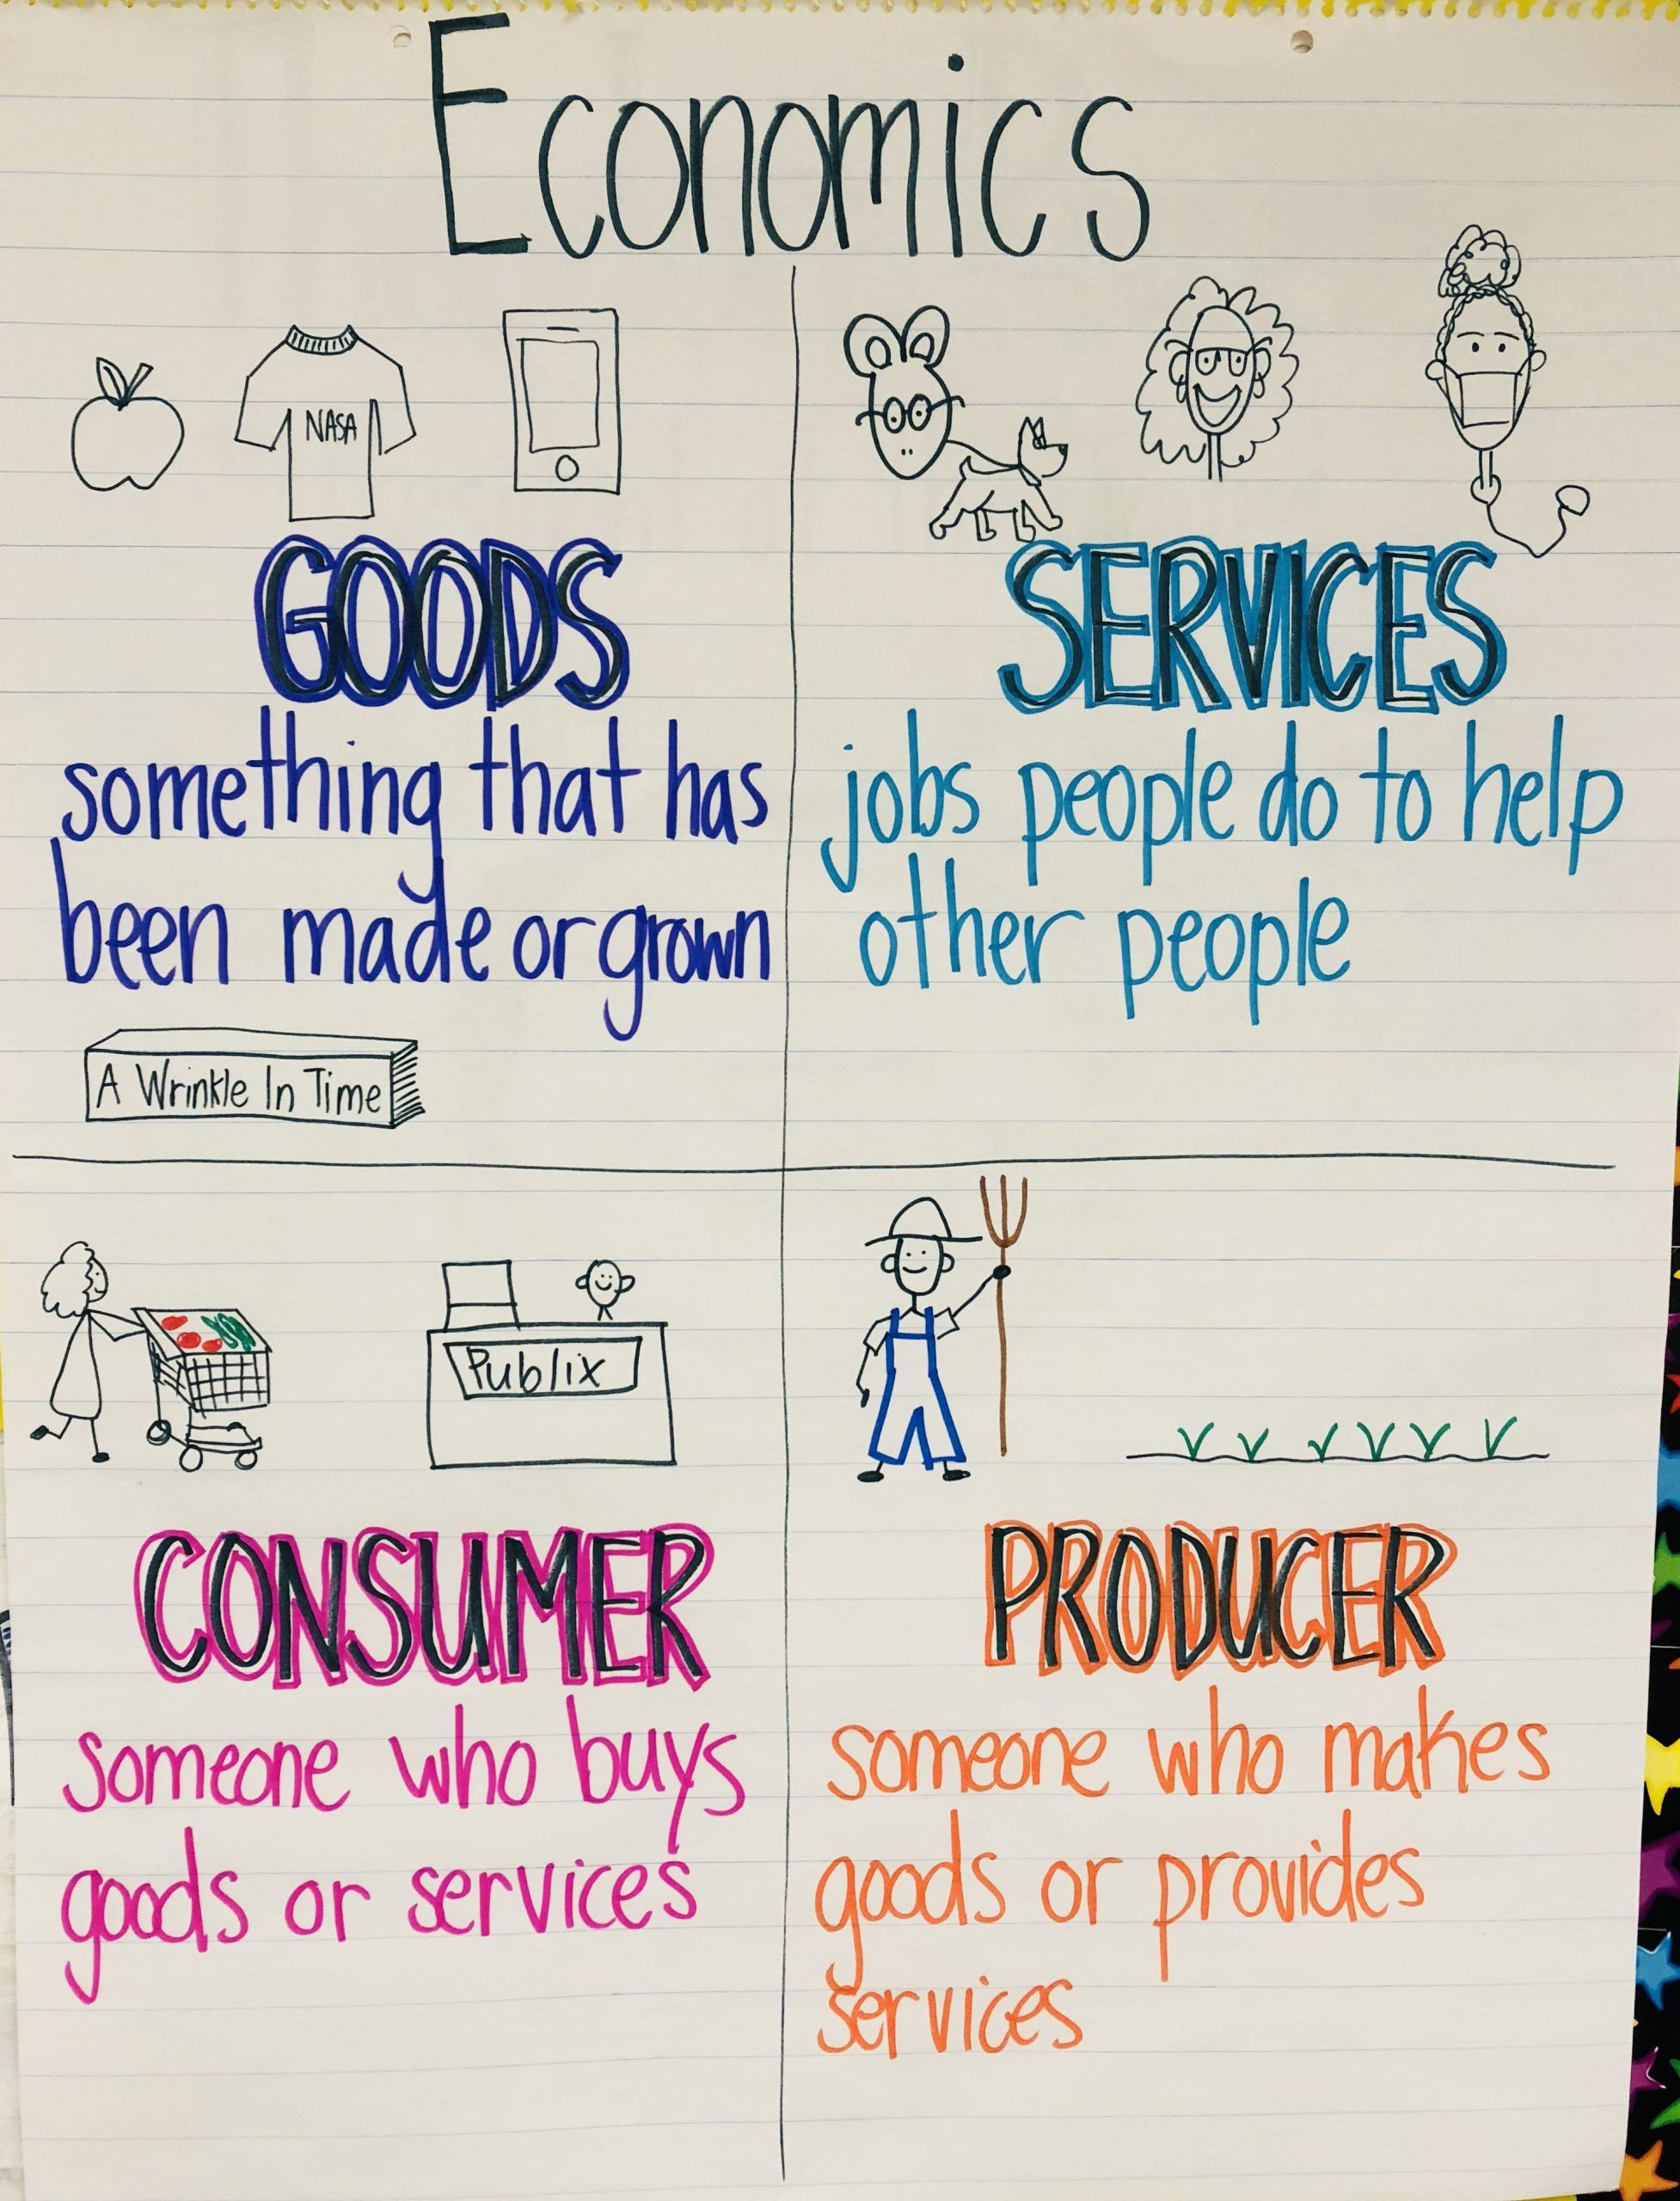 Producers and Consumers Worksheet Economics Goods Services Consumer  Producer Anchorchart   Teaching economics [ 2560 x 1954 Pixel ]